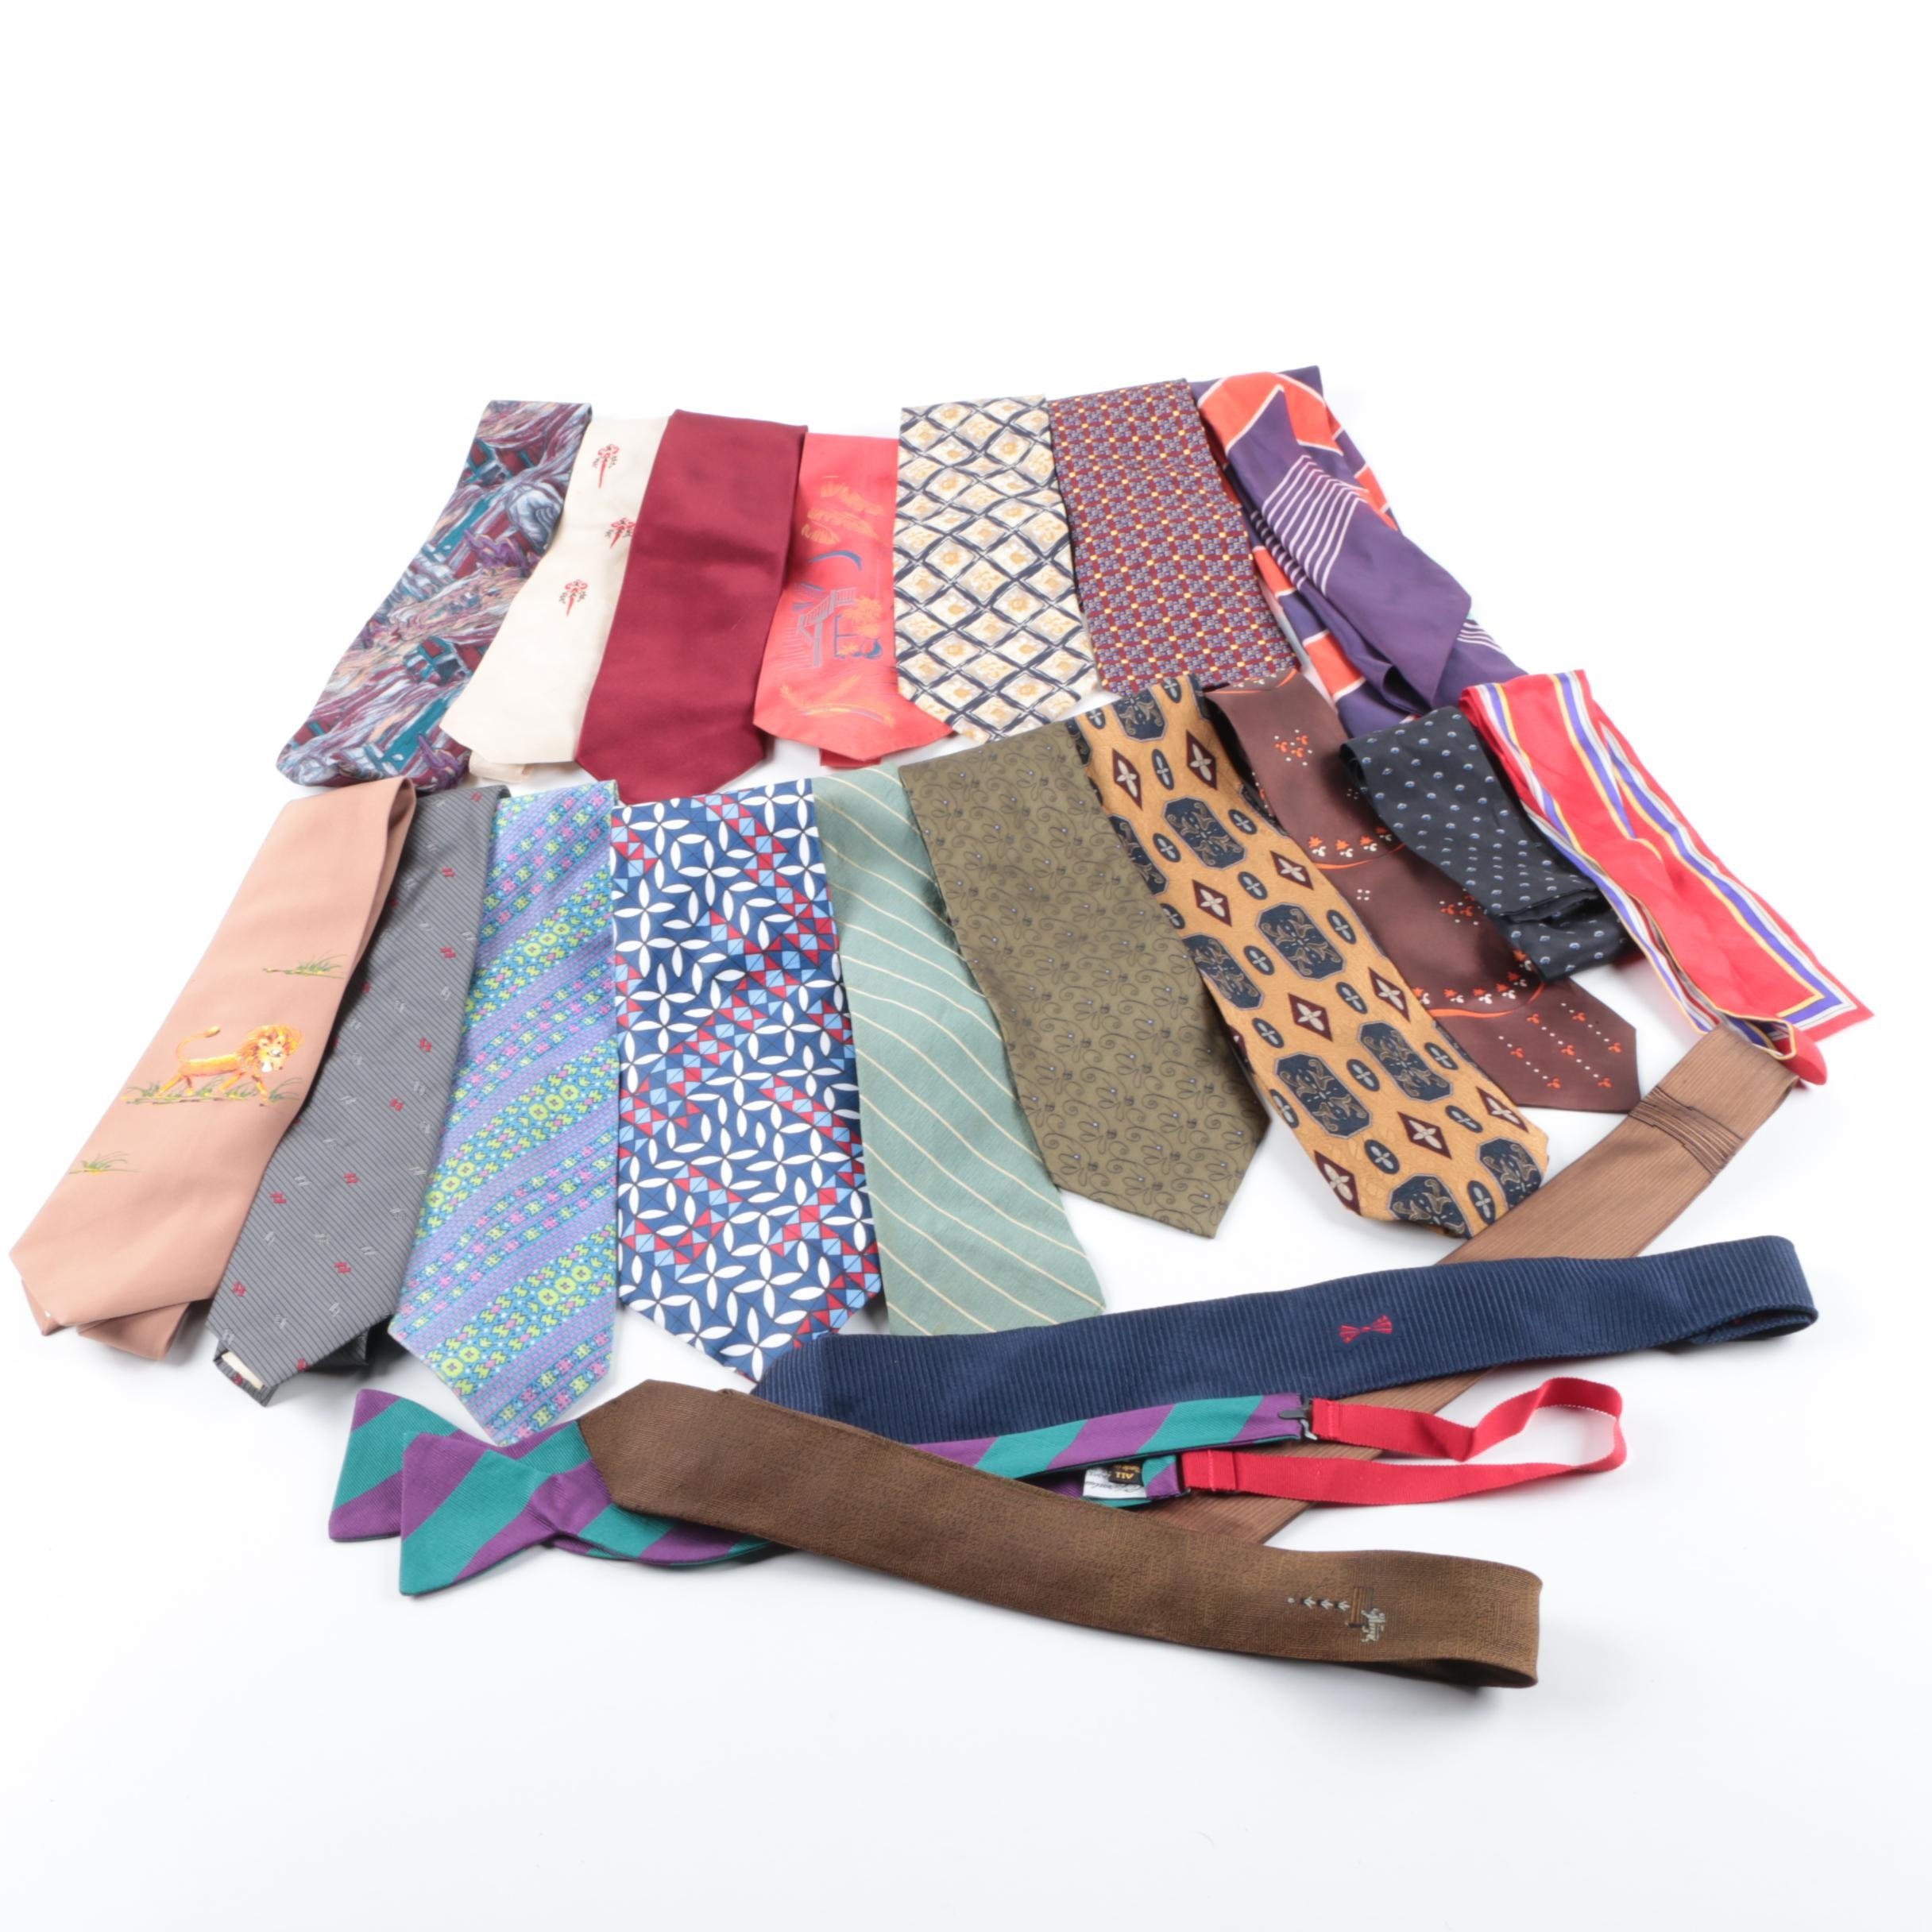 Men's Neckties Including Pierre Cardin, Wembley, and Joseph Abboud